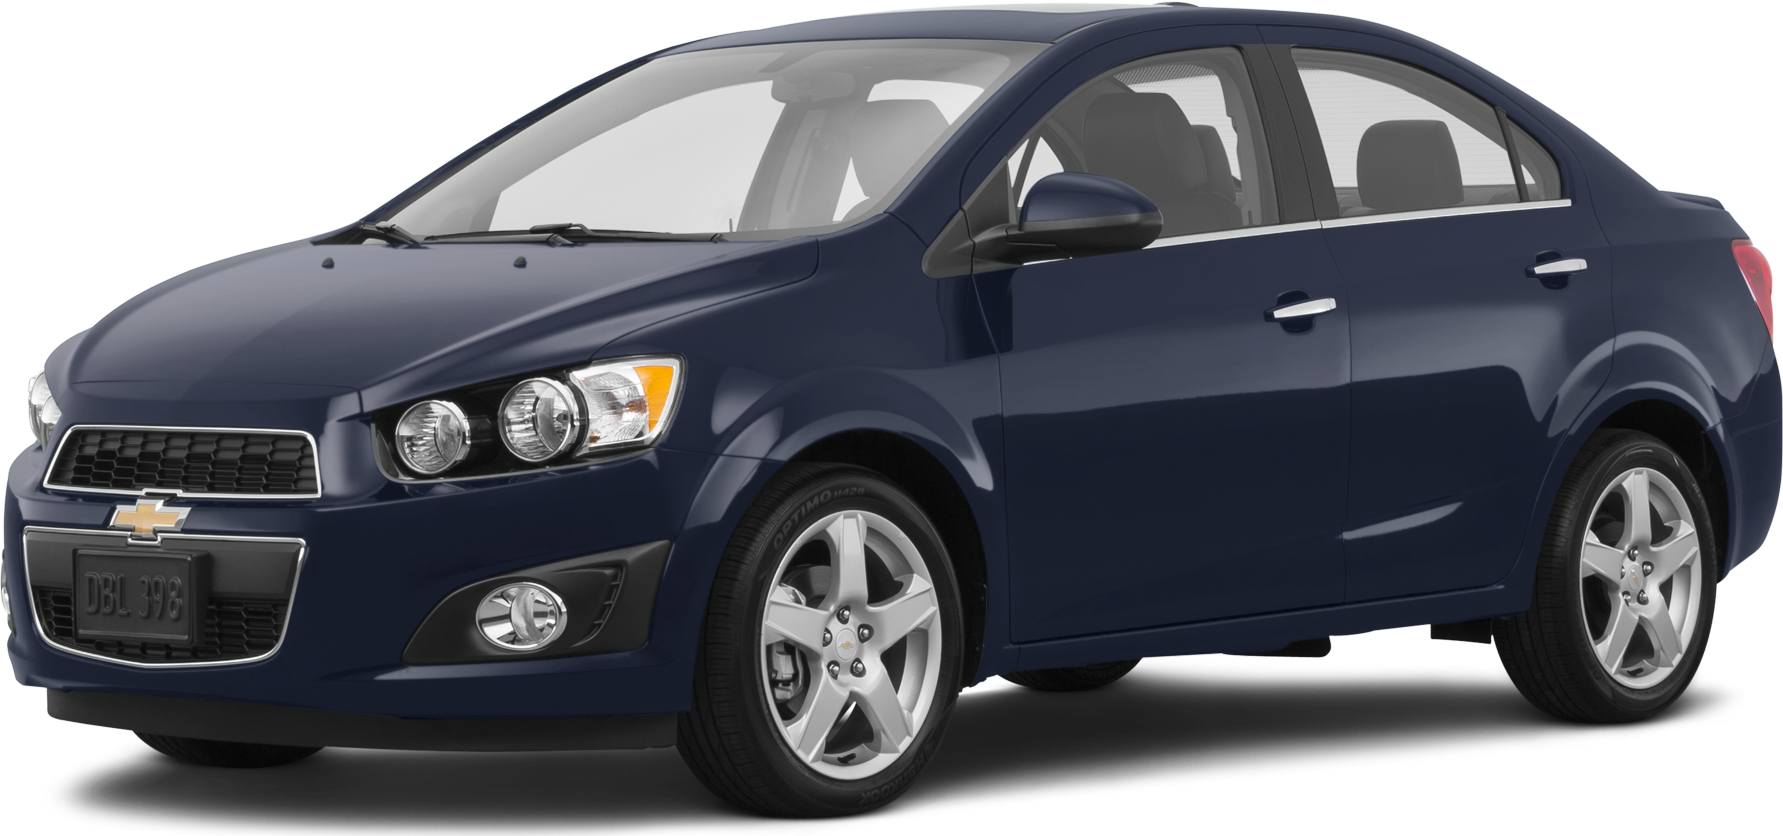 Used 2015 Chevrolet Sonic Values Cars For Sale Kelley Blue Book